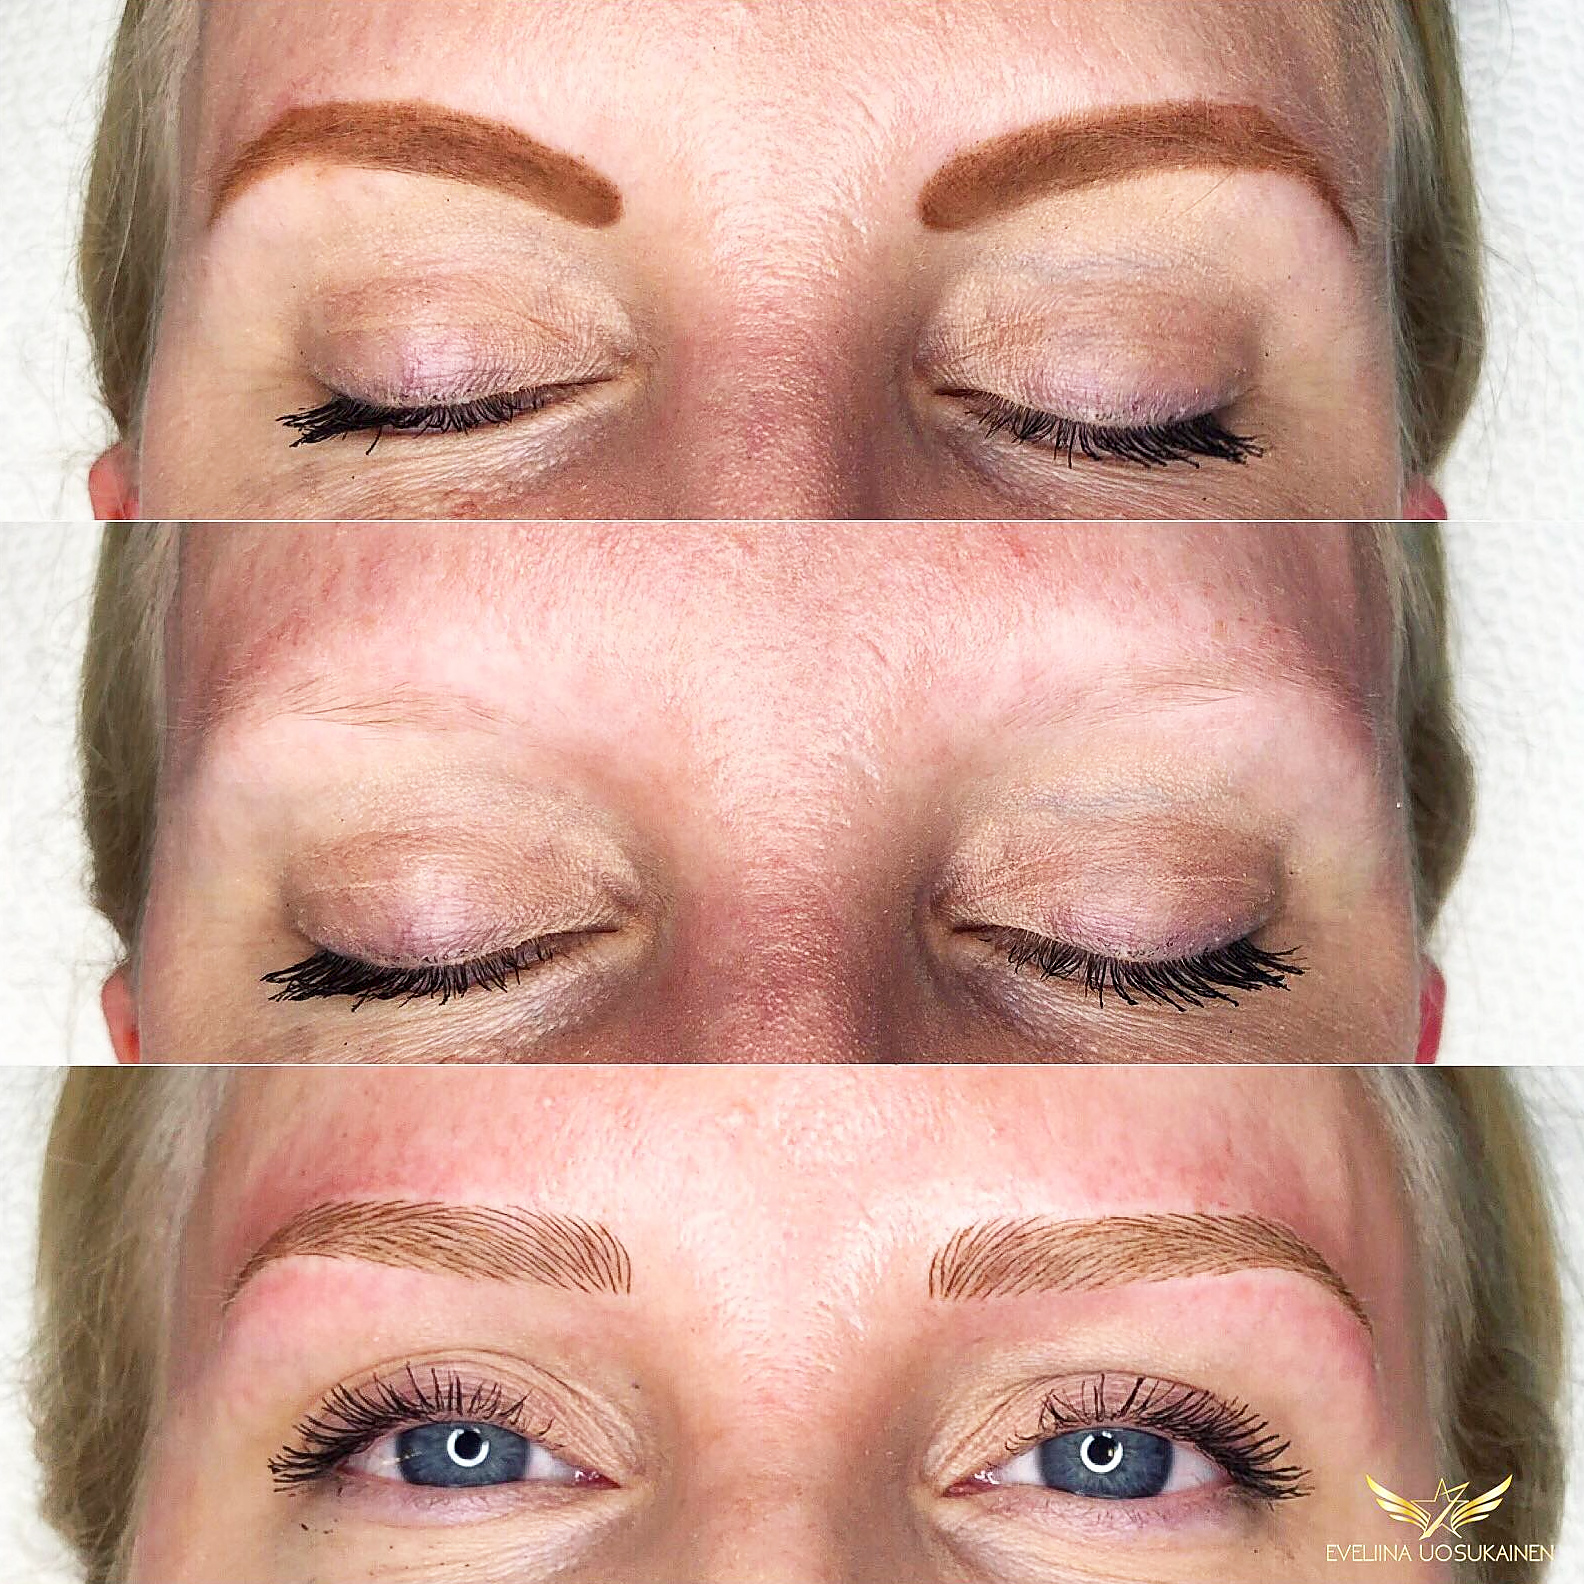 Students' work- A fine example how brows look like with makeup, without makeup and with light microblading. Made by a SharpBrows student after the class.